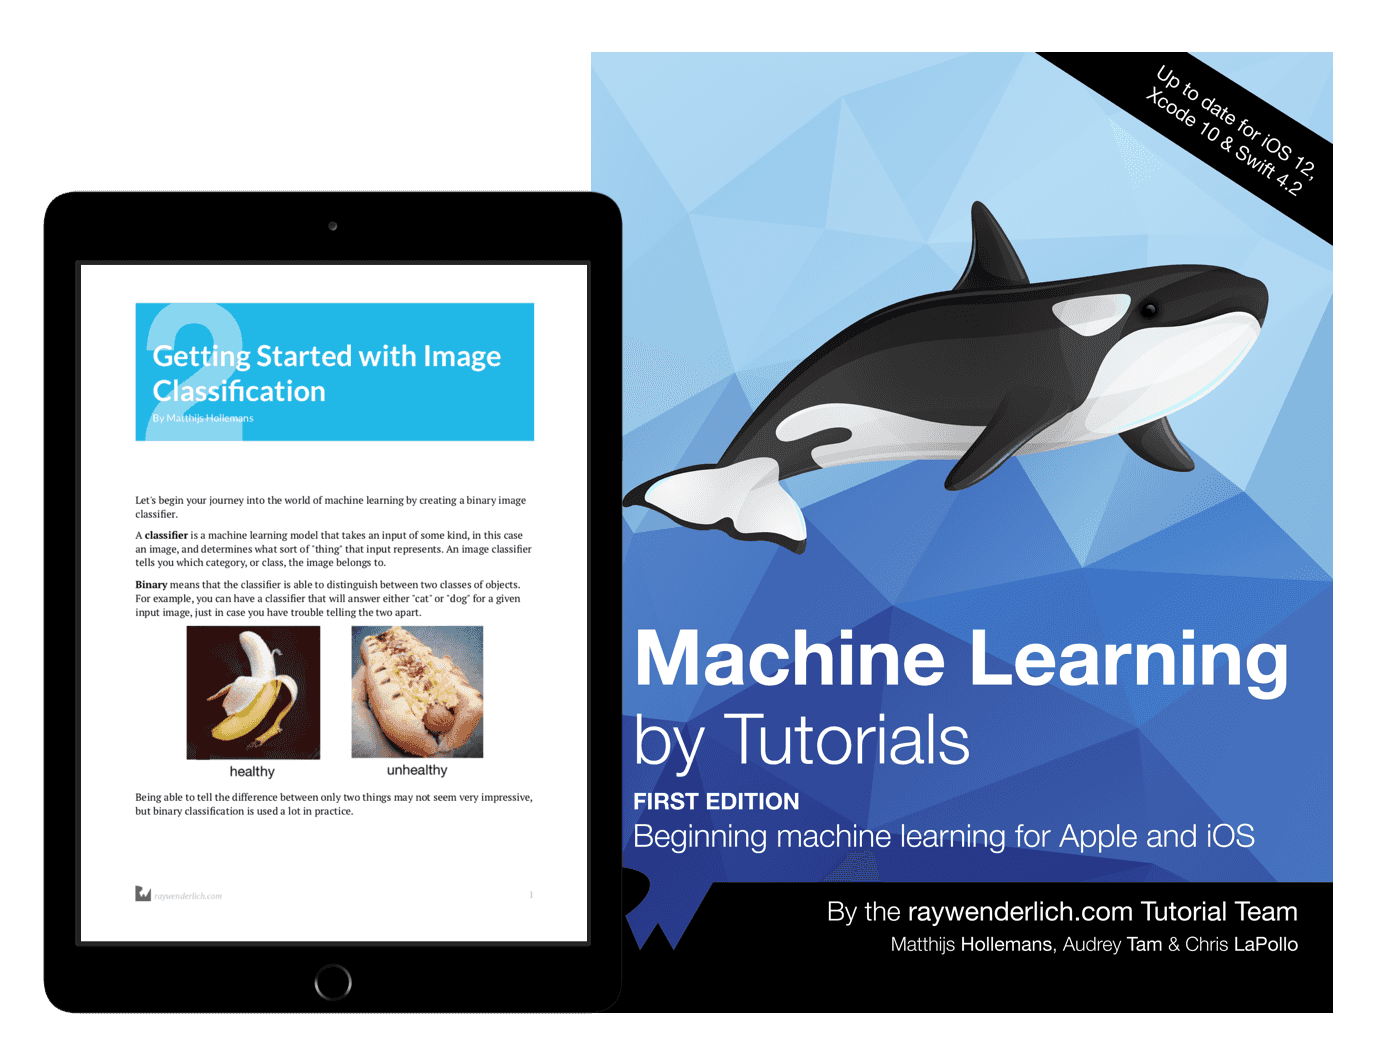 Machine Learning by Tutorials book cover